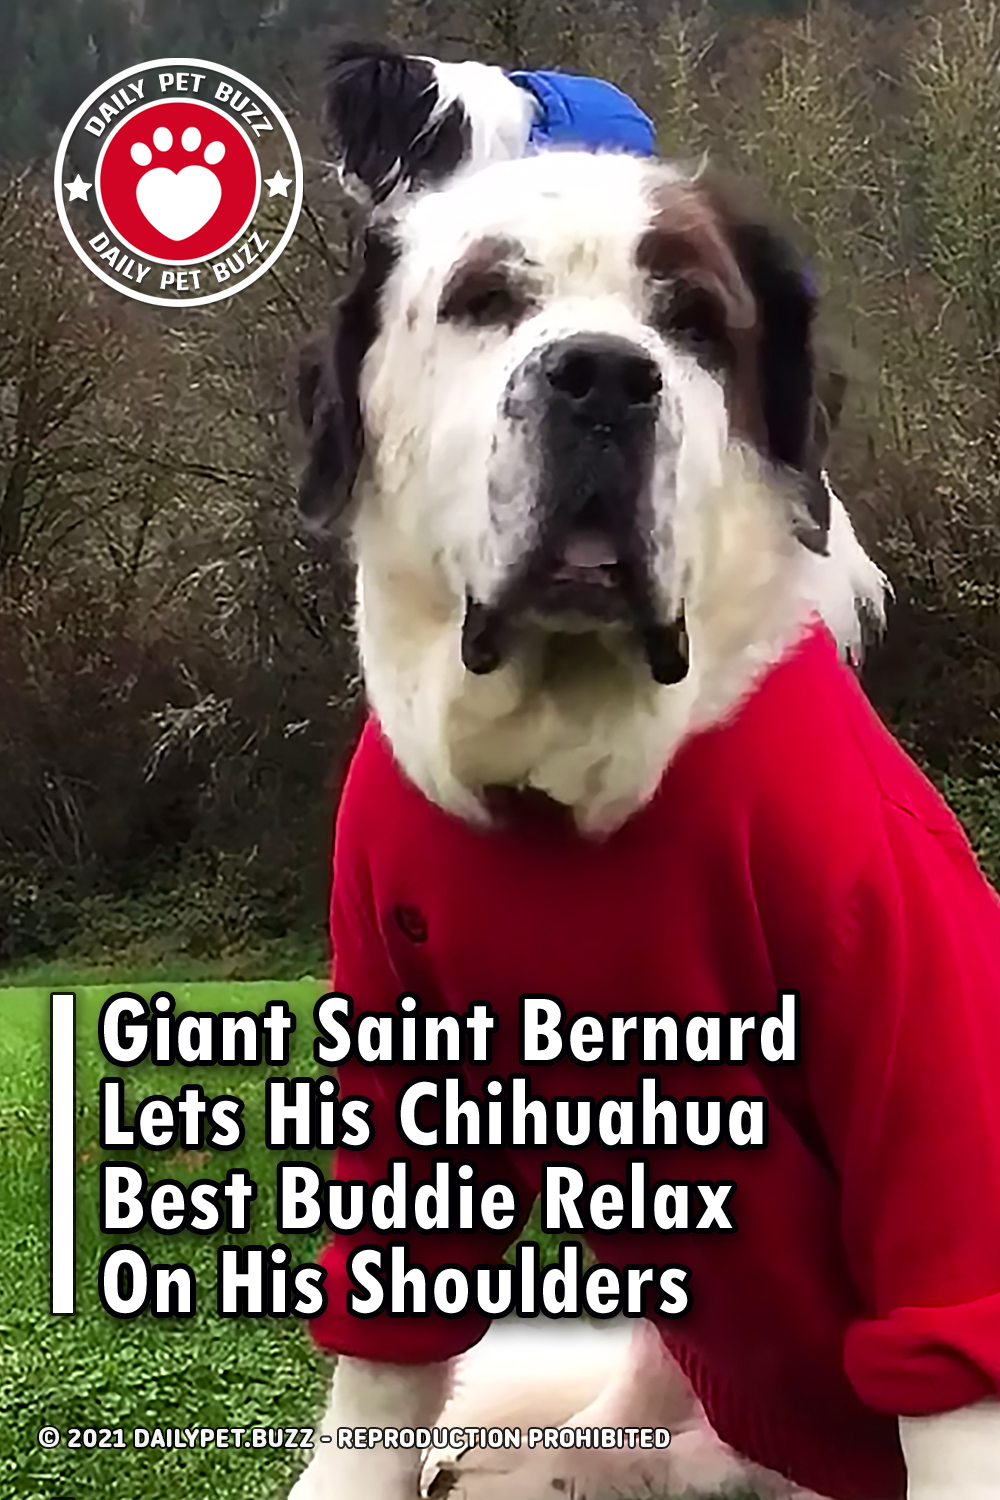 Giant Saint Bernard Lets His Chihuahua Best Buddie Relax On His Shoulders